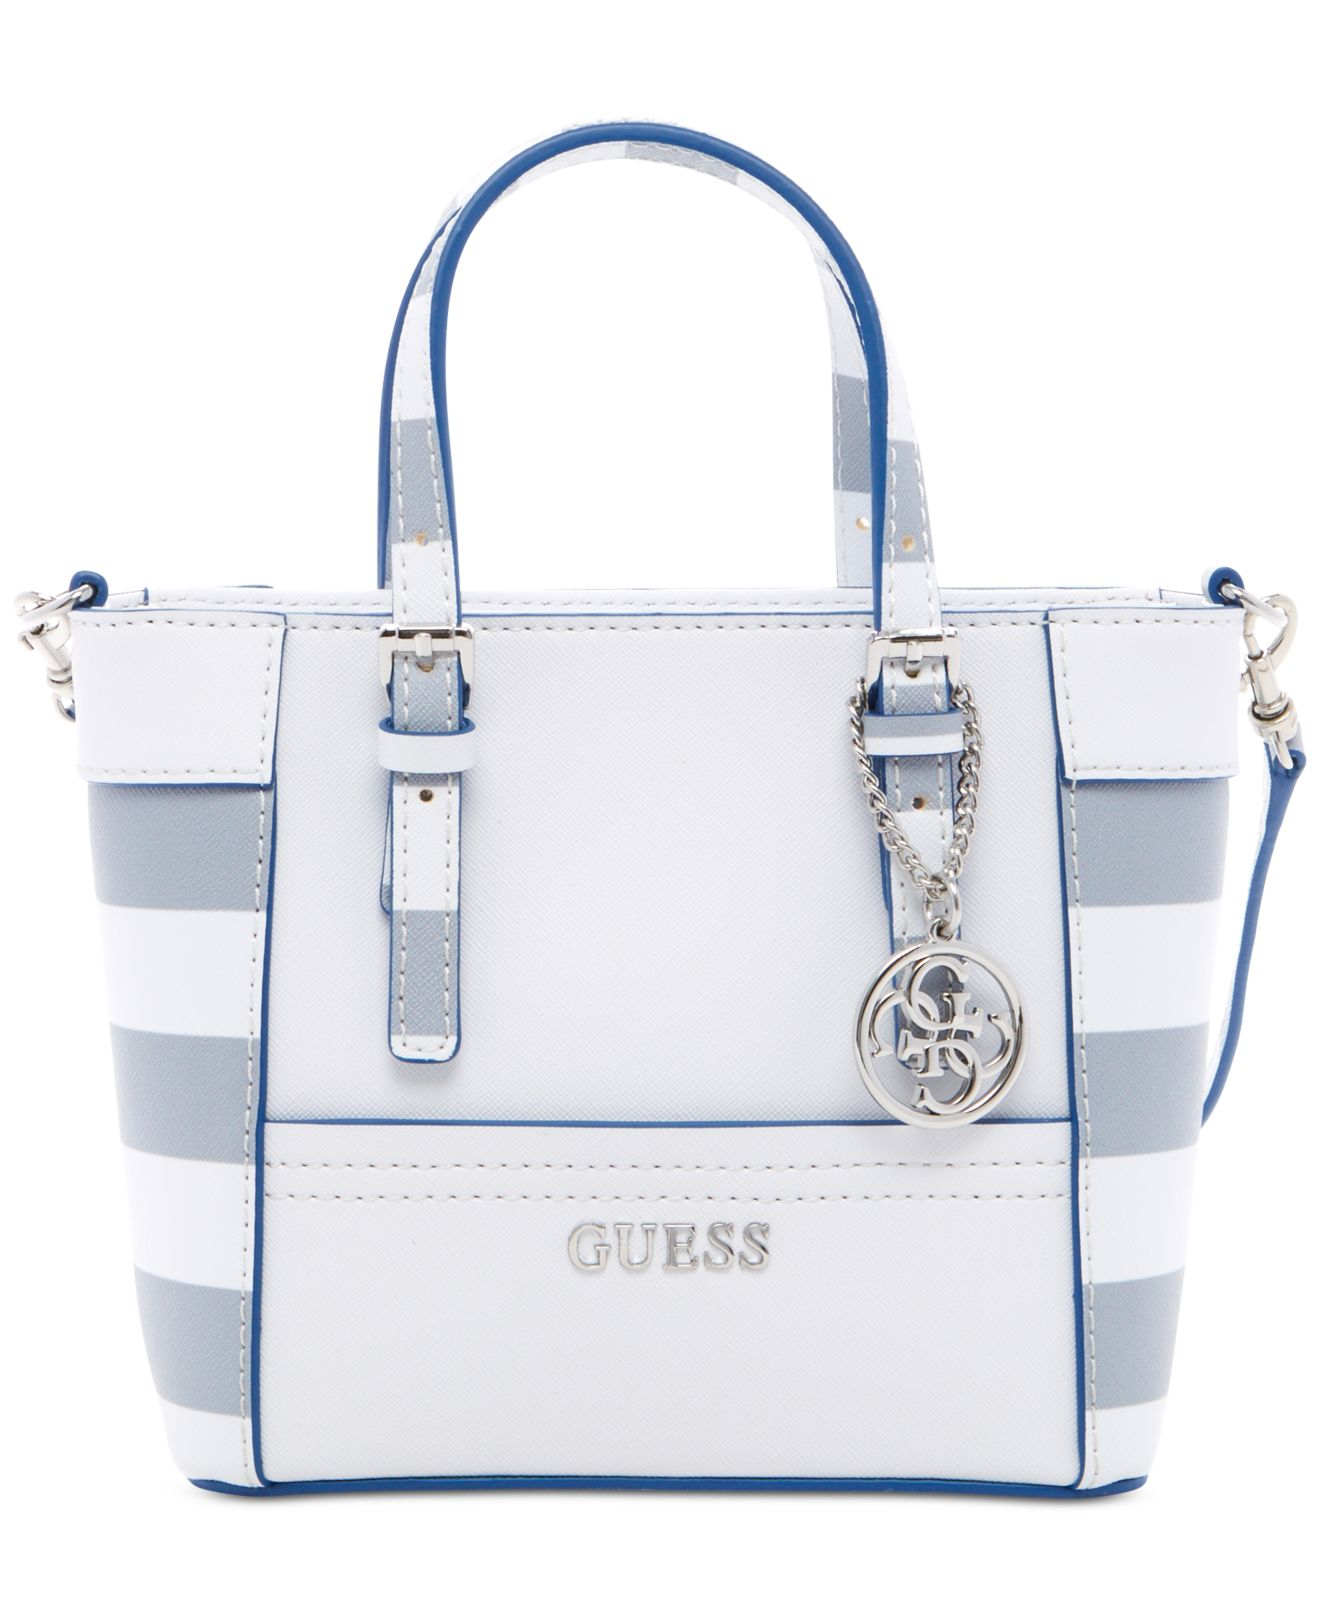 0ca564f56ba89 Lyst guess delaney petite tote with crossbody strap in gray jpg 1320x1616 Guess  handbag grey